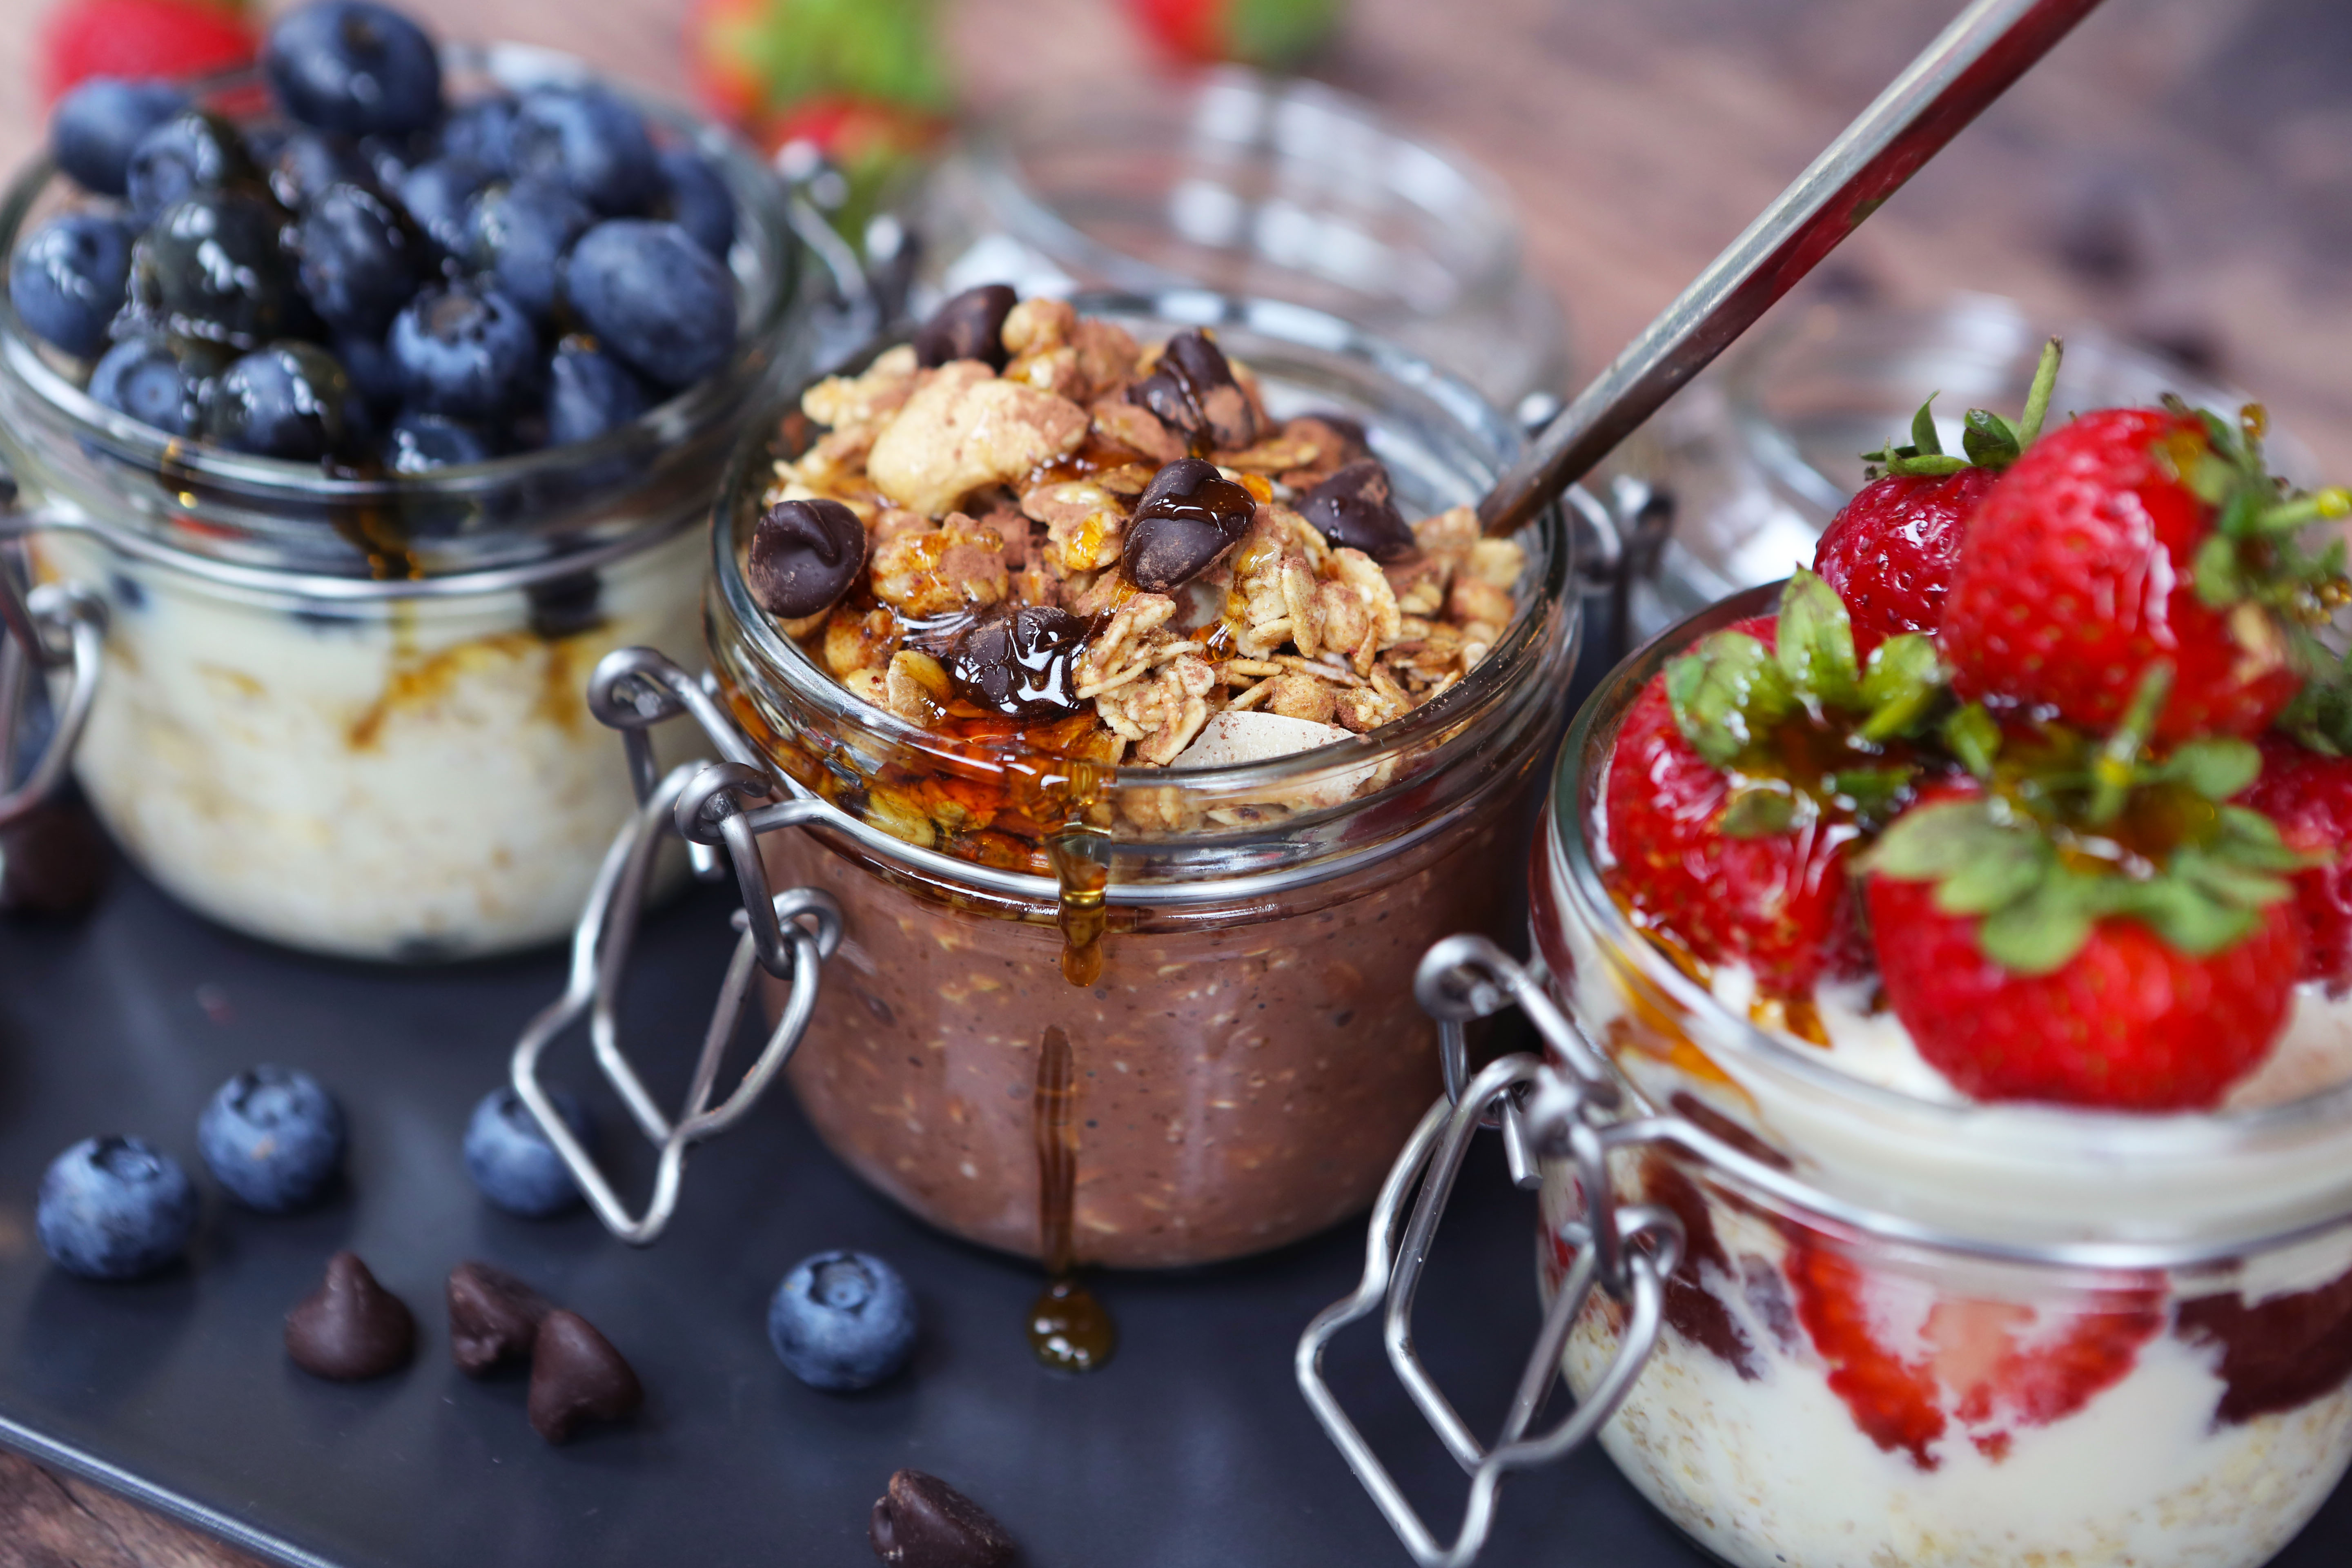 overnight oats - Vegan recipes to help maximise your effectiveness